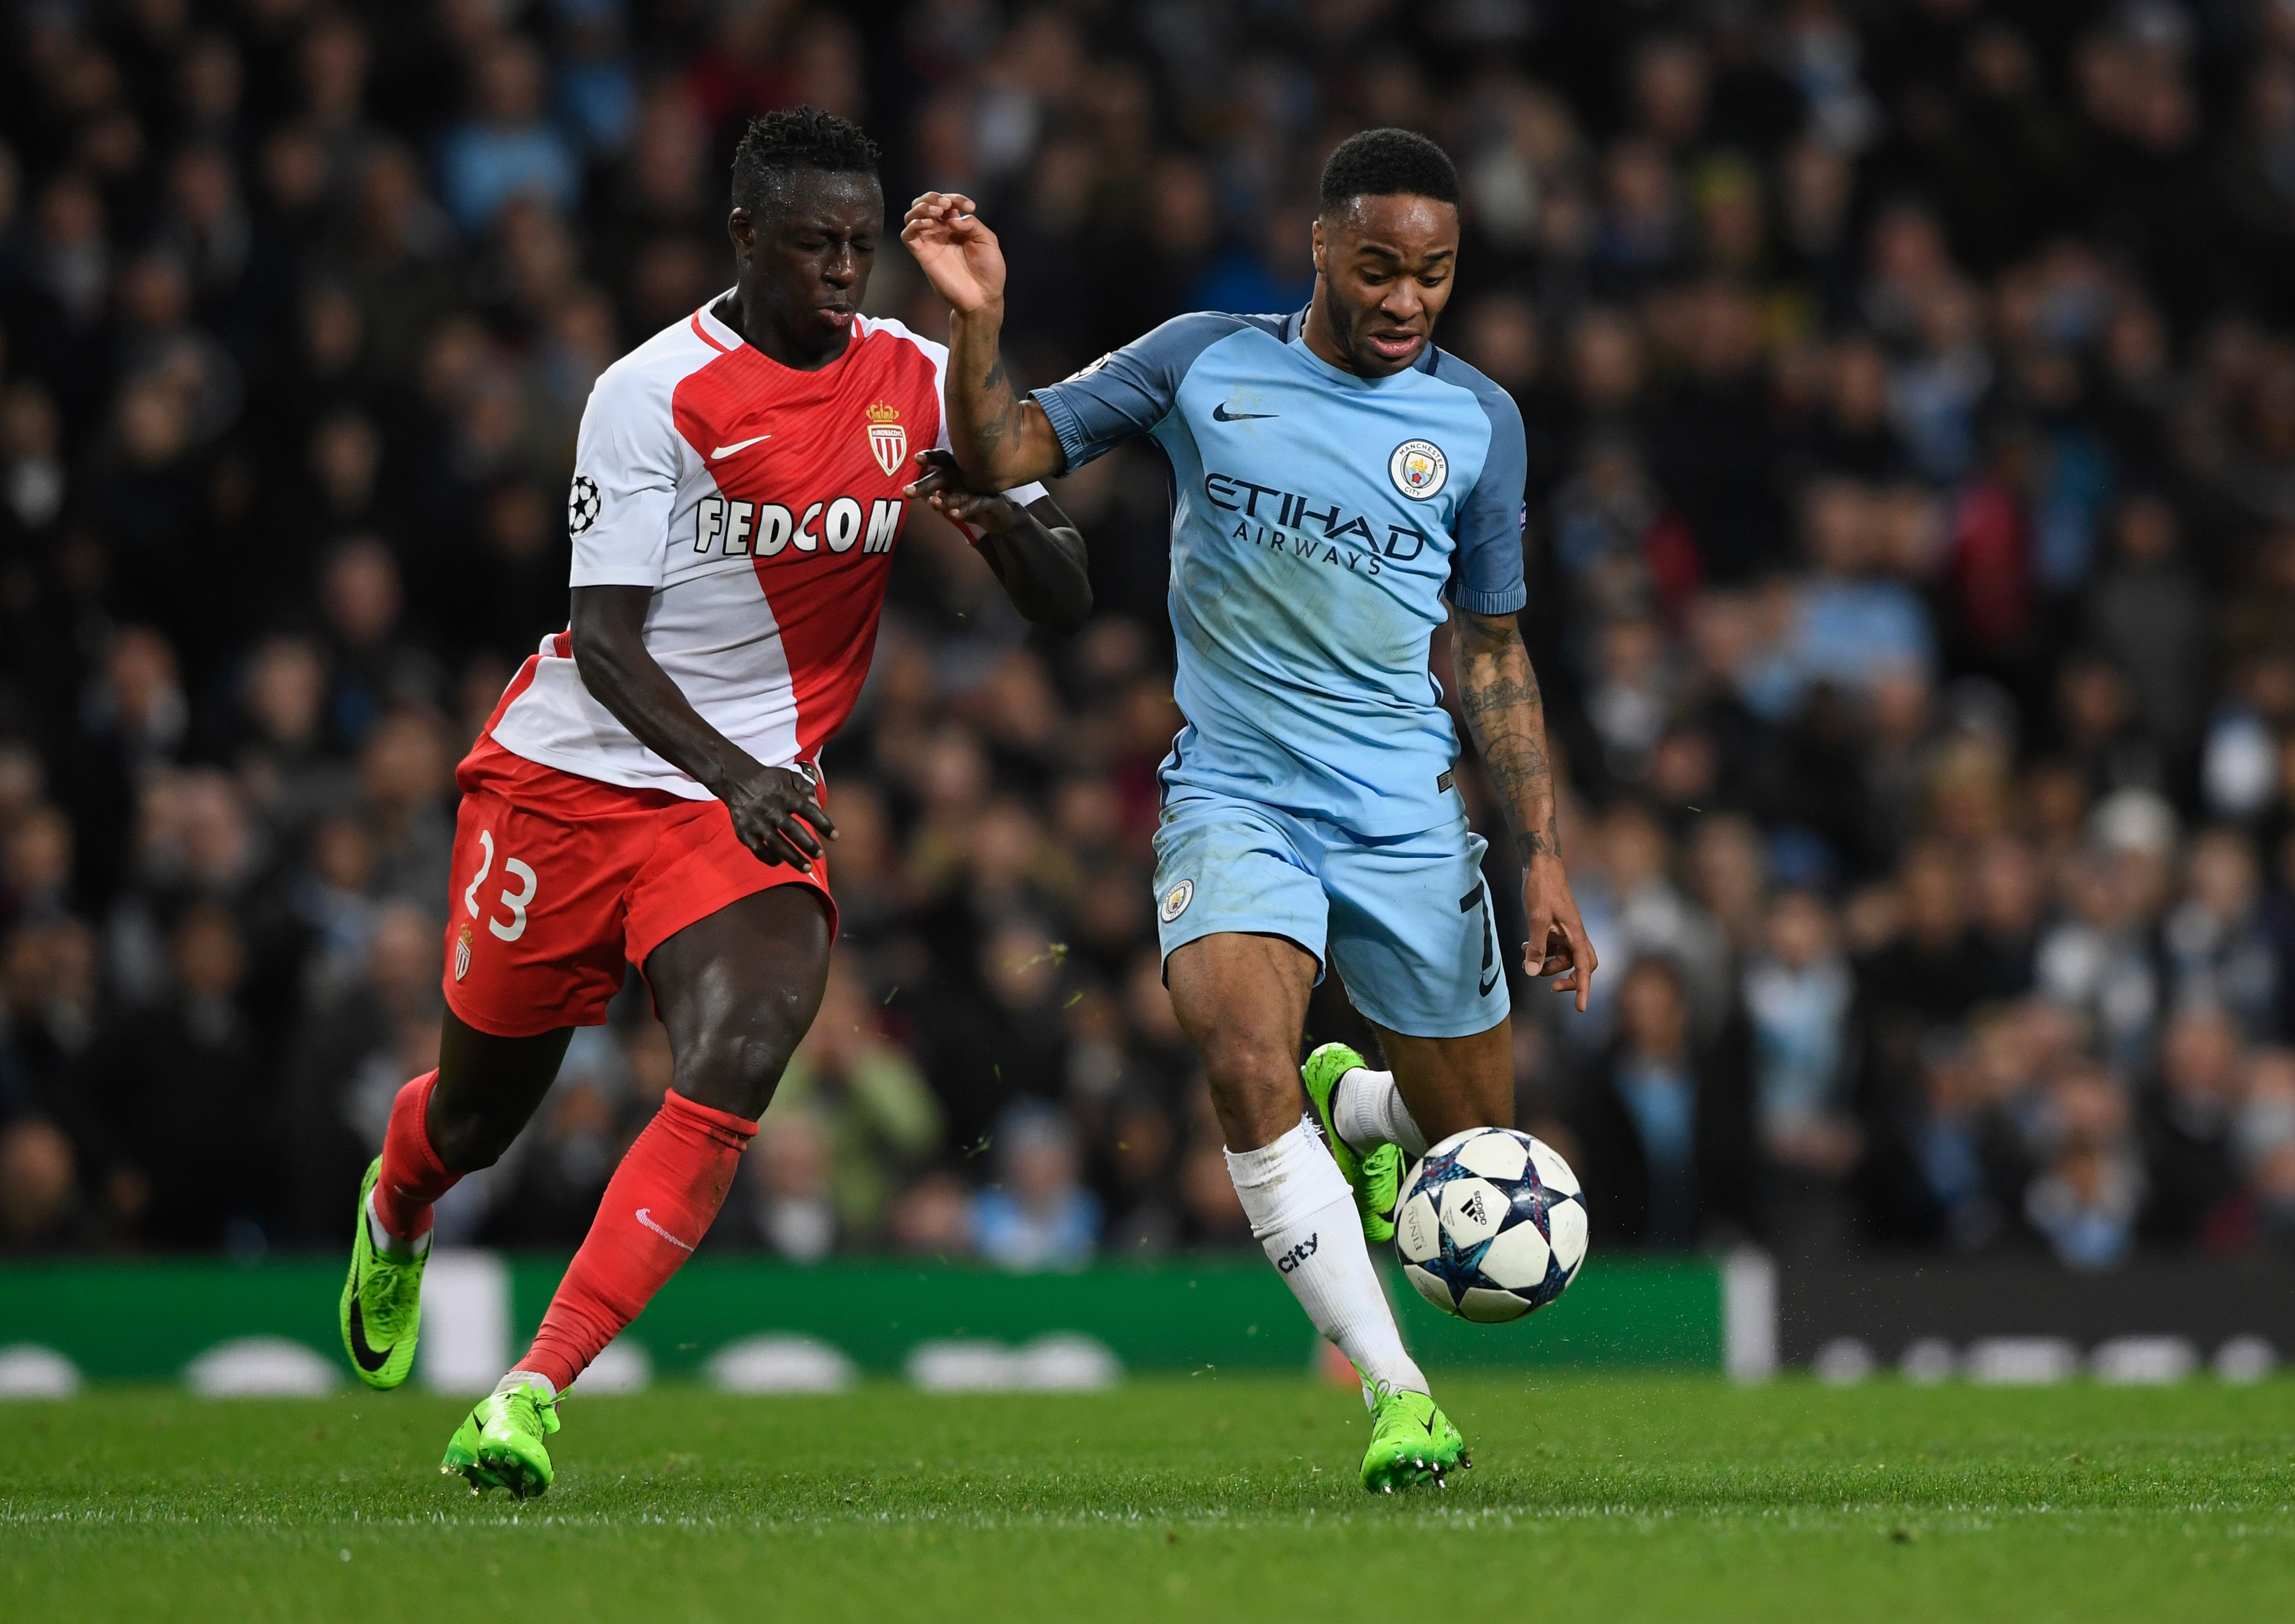 monaco vs manchester city live stream watch champions league online. Black Bedroom Furniture Sets. Home Design Ideas